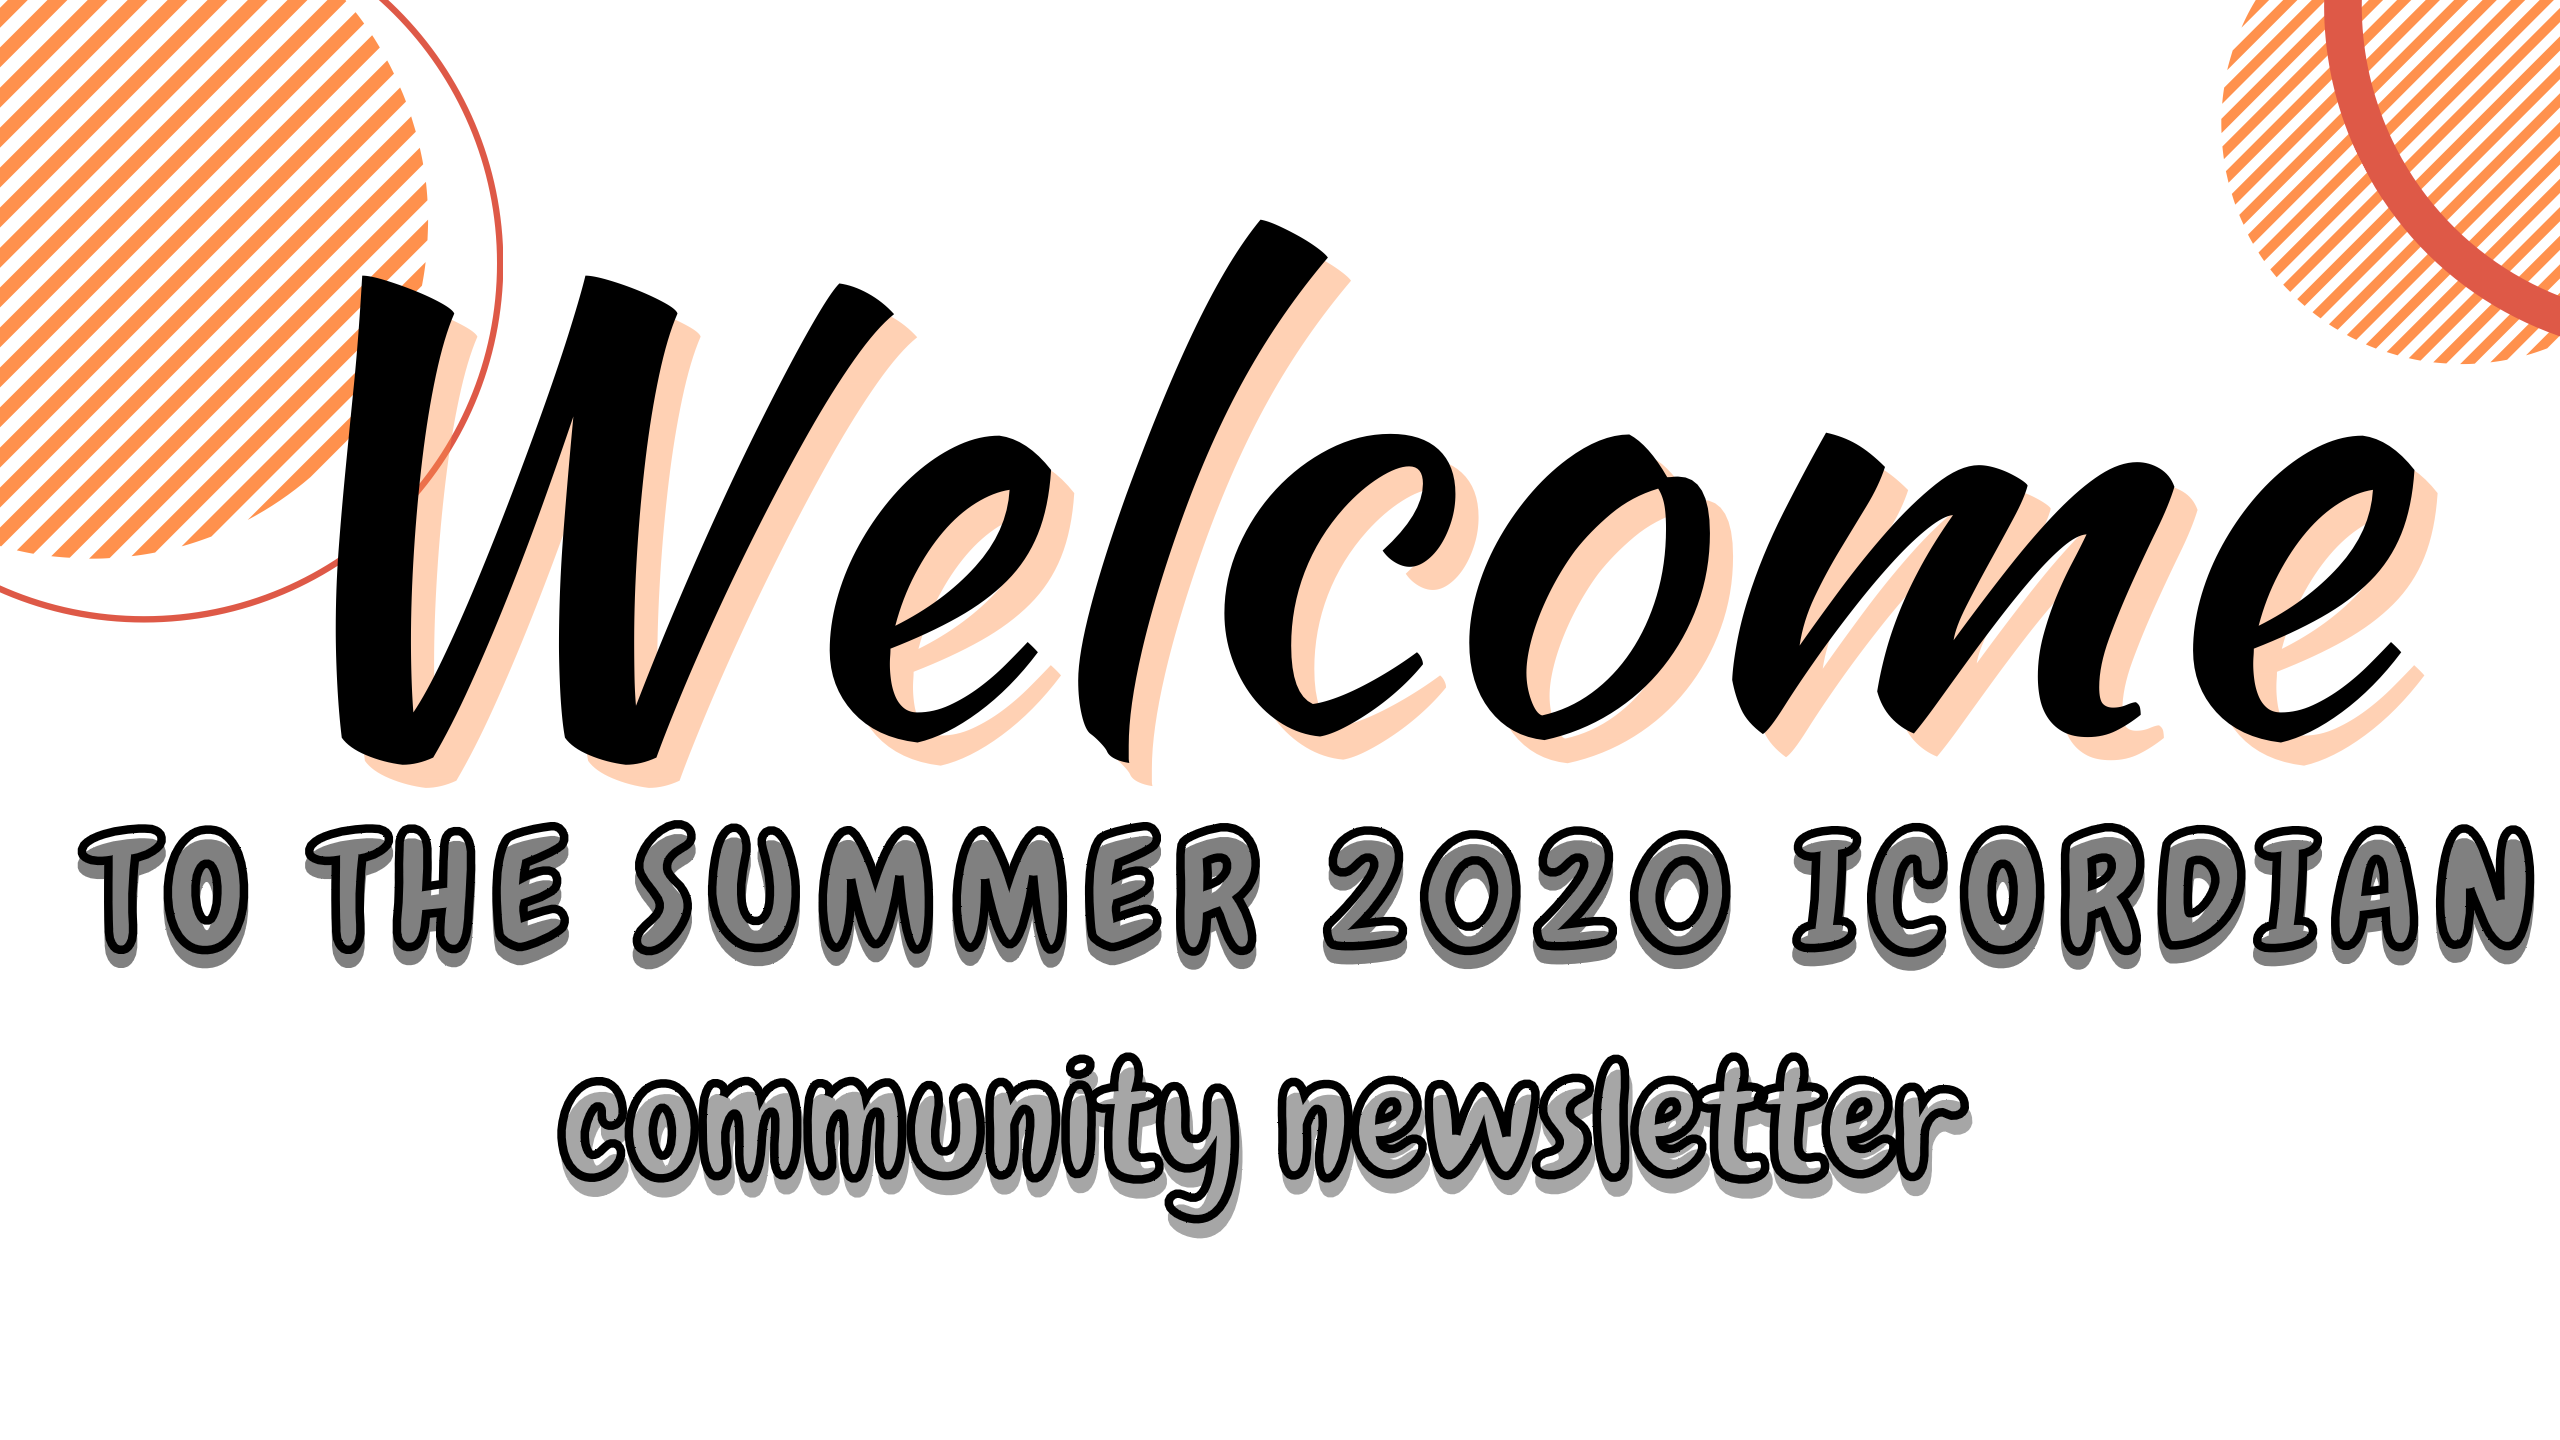 Welcome to the summer 2020 ICORDian community newsletter